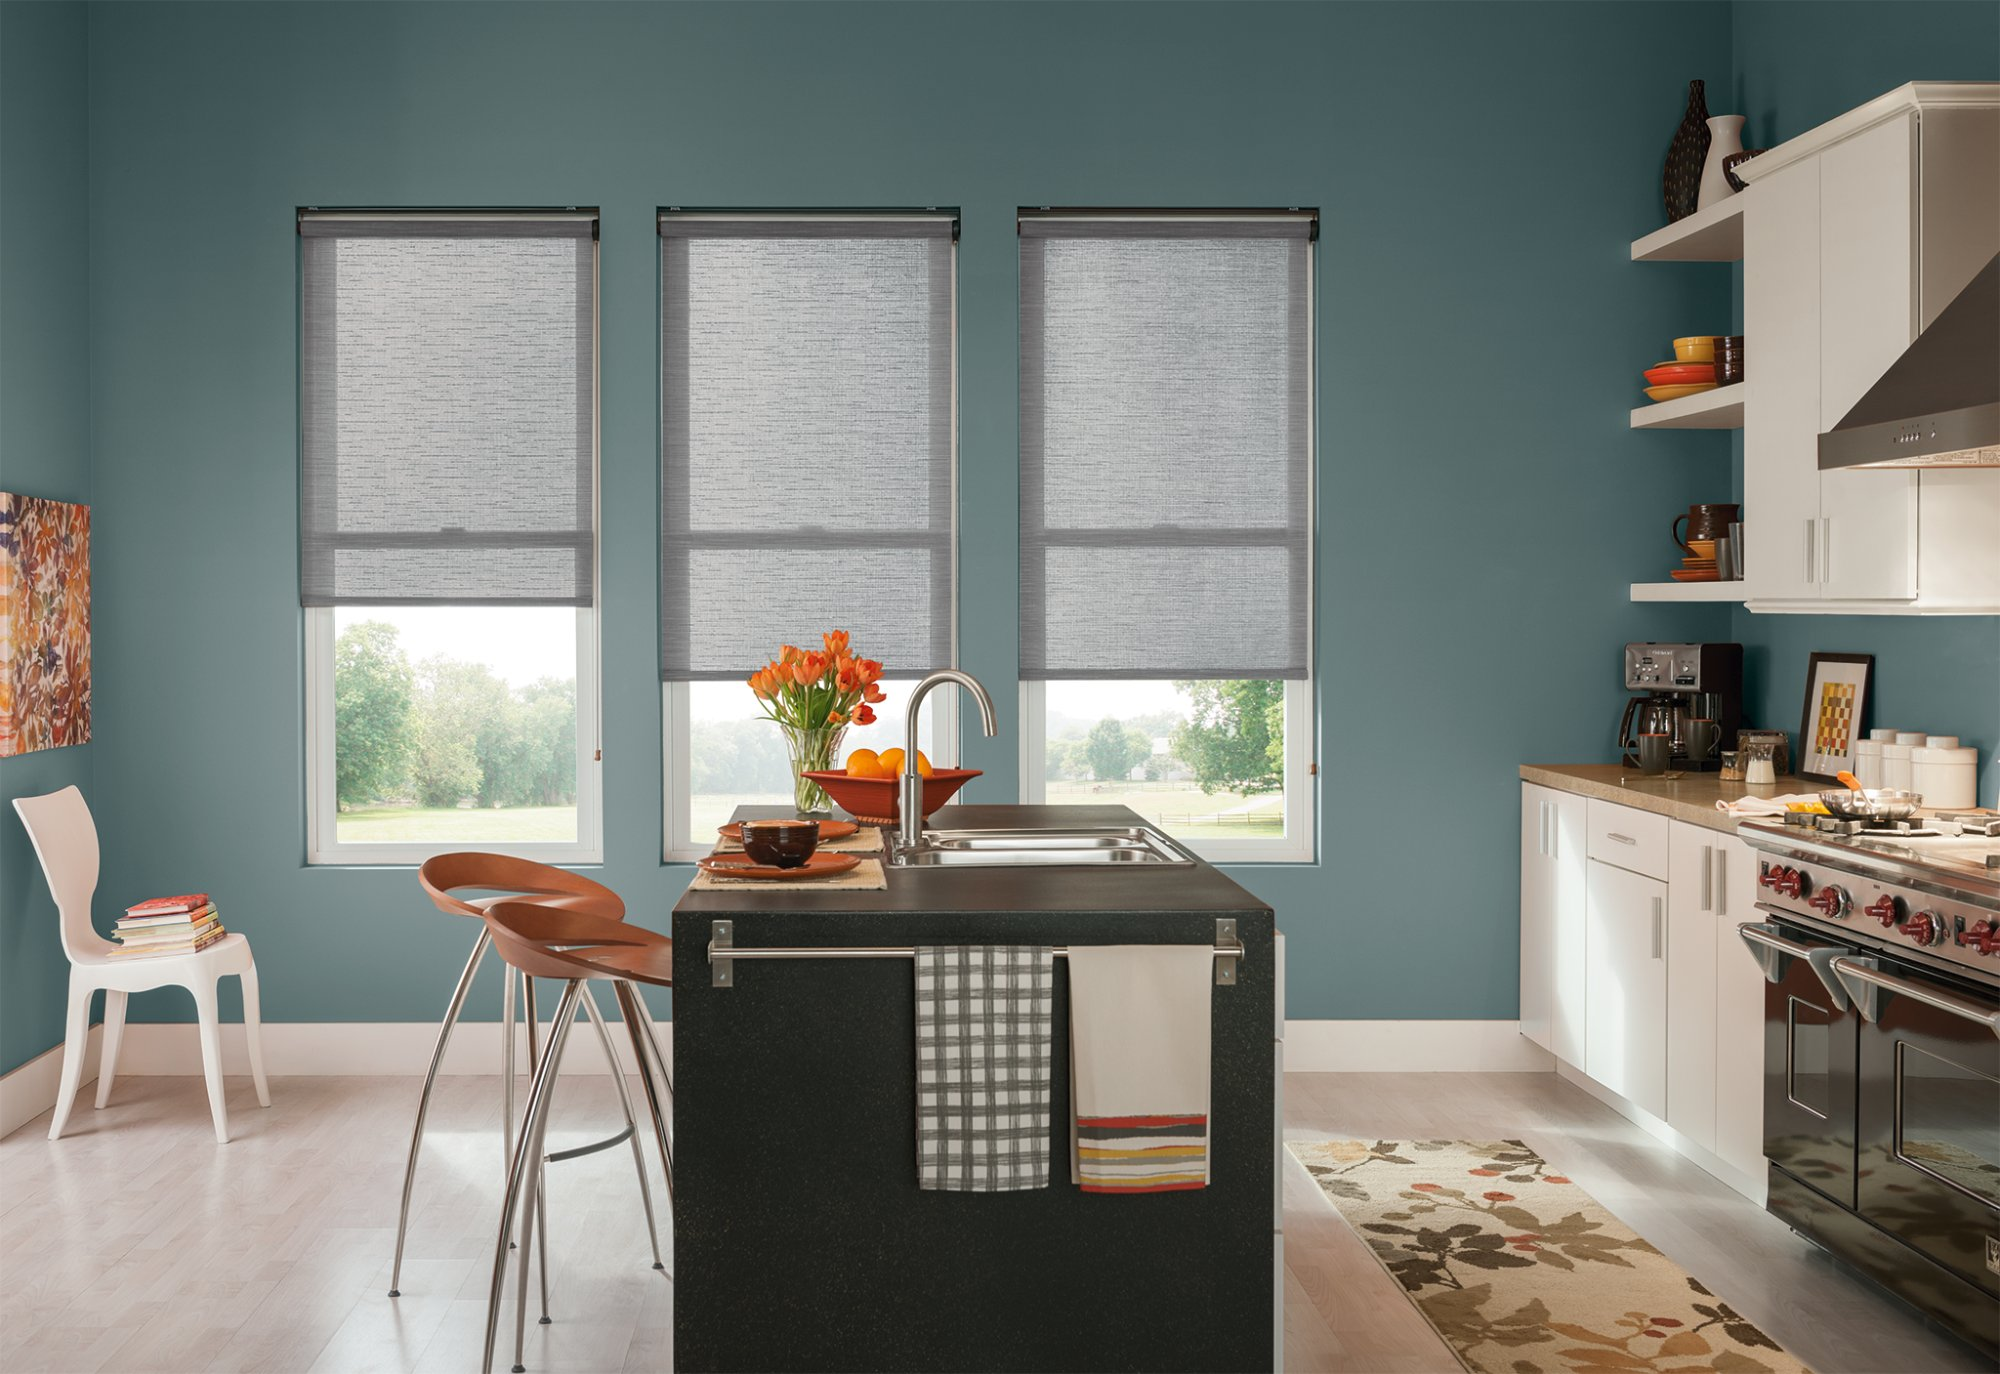 styles window awesome ideas shades blinds and blocking imgid sun best treatments image curtains light concept of